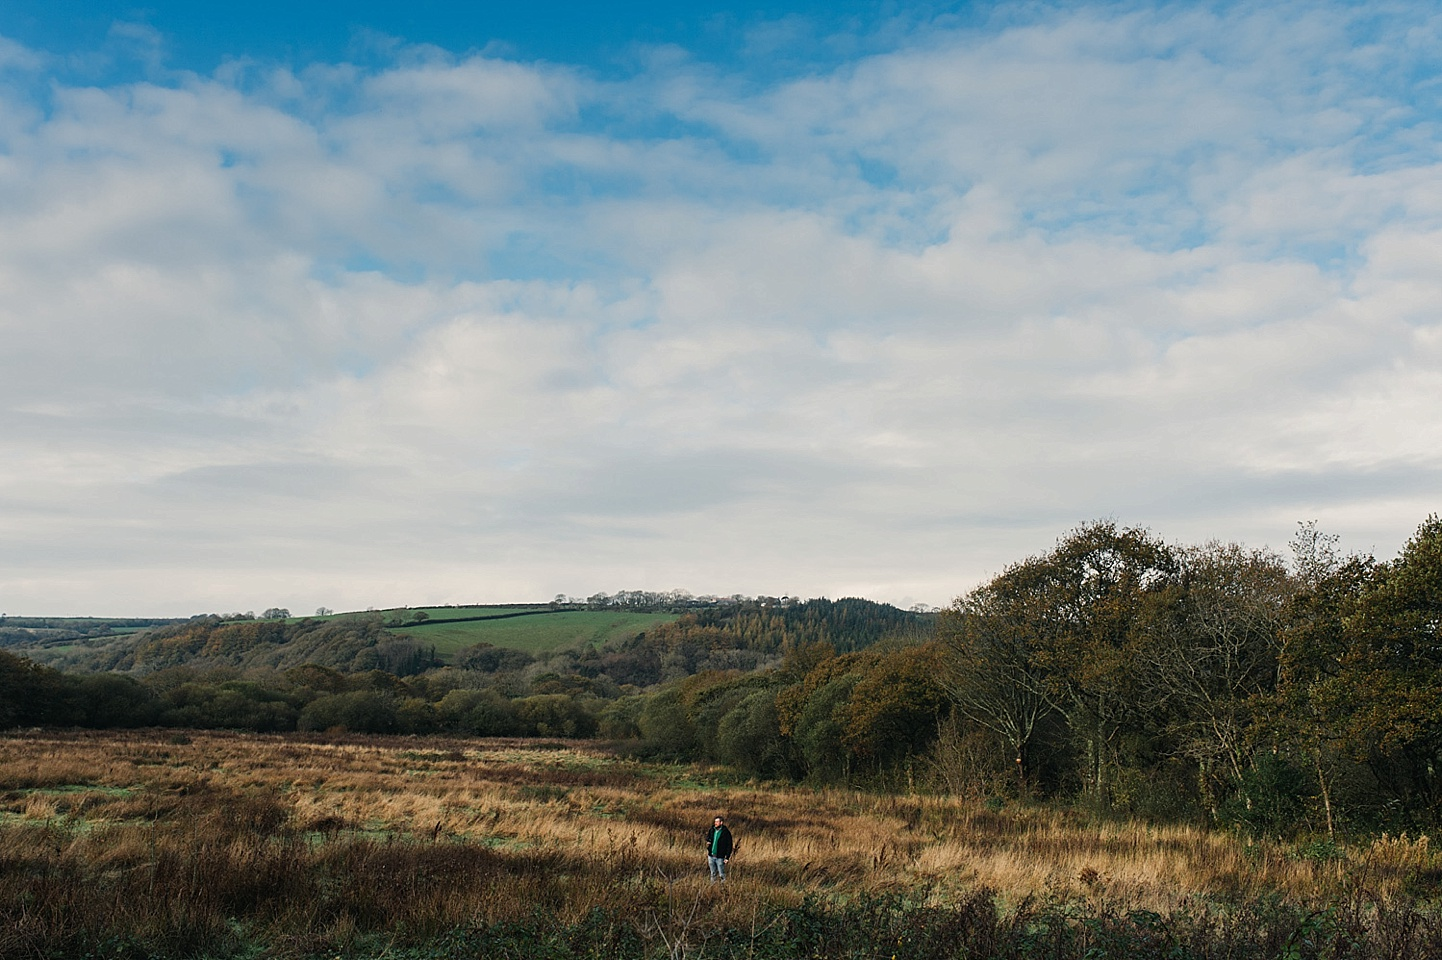 Beautiful blue skies over Welsh countryside - Fforest wedding photography - rustic camping wedding - Wales alternative wedding photography (c) Babb Photo - alternative wedding photographer